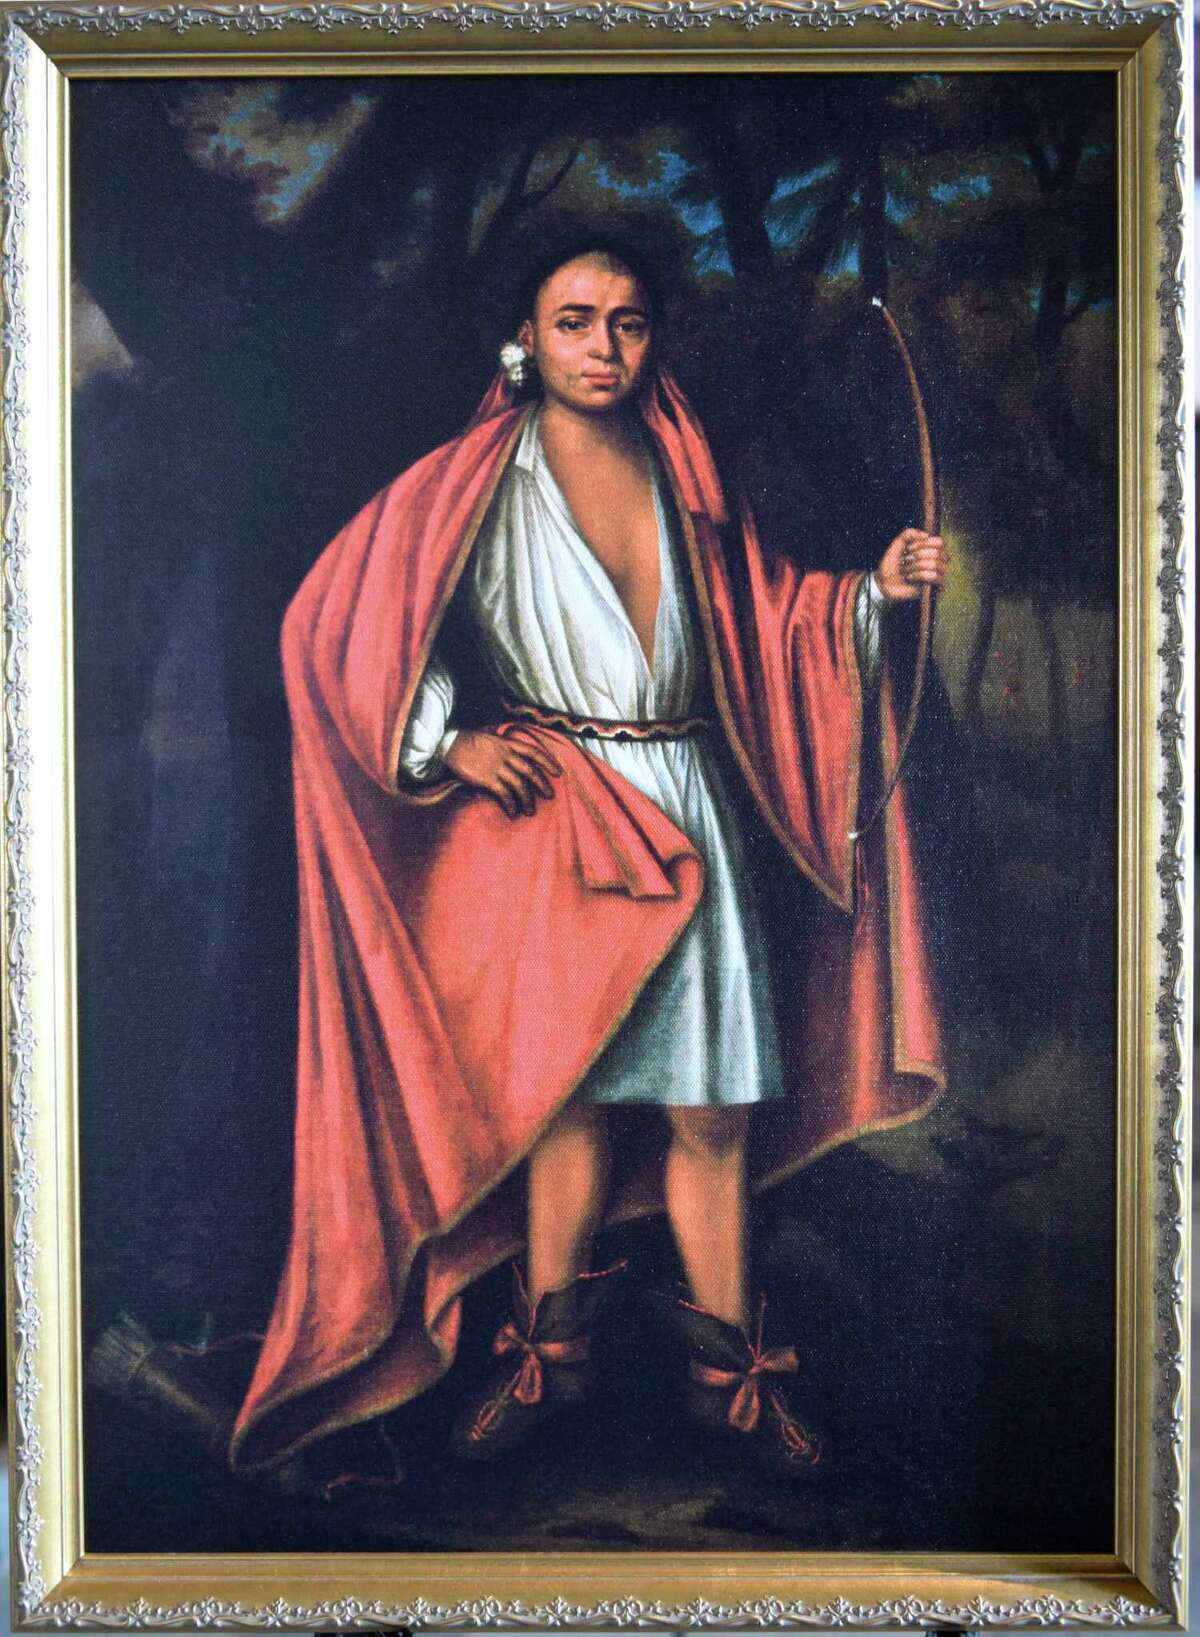 Johannes Onekoheriako, a Mohawk leader, is one of four Native American leaders who traveled to England where the Crown commissioned Dutch artist Jan Verelst to paint their portraits and is displayed in First Reformed Church on Thursday, Feb. 11, 2021 in Schenectady, N.Y. The leaders were members of the church.(Lori Van Buren/Times Union)